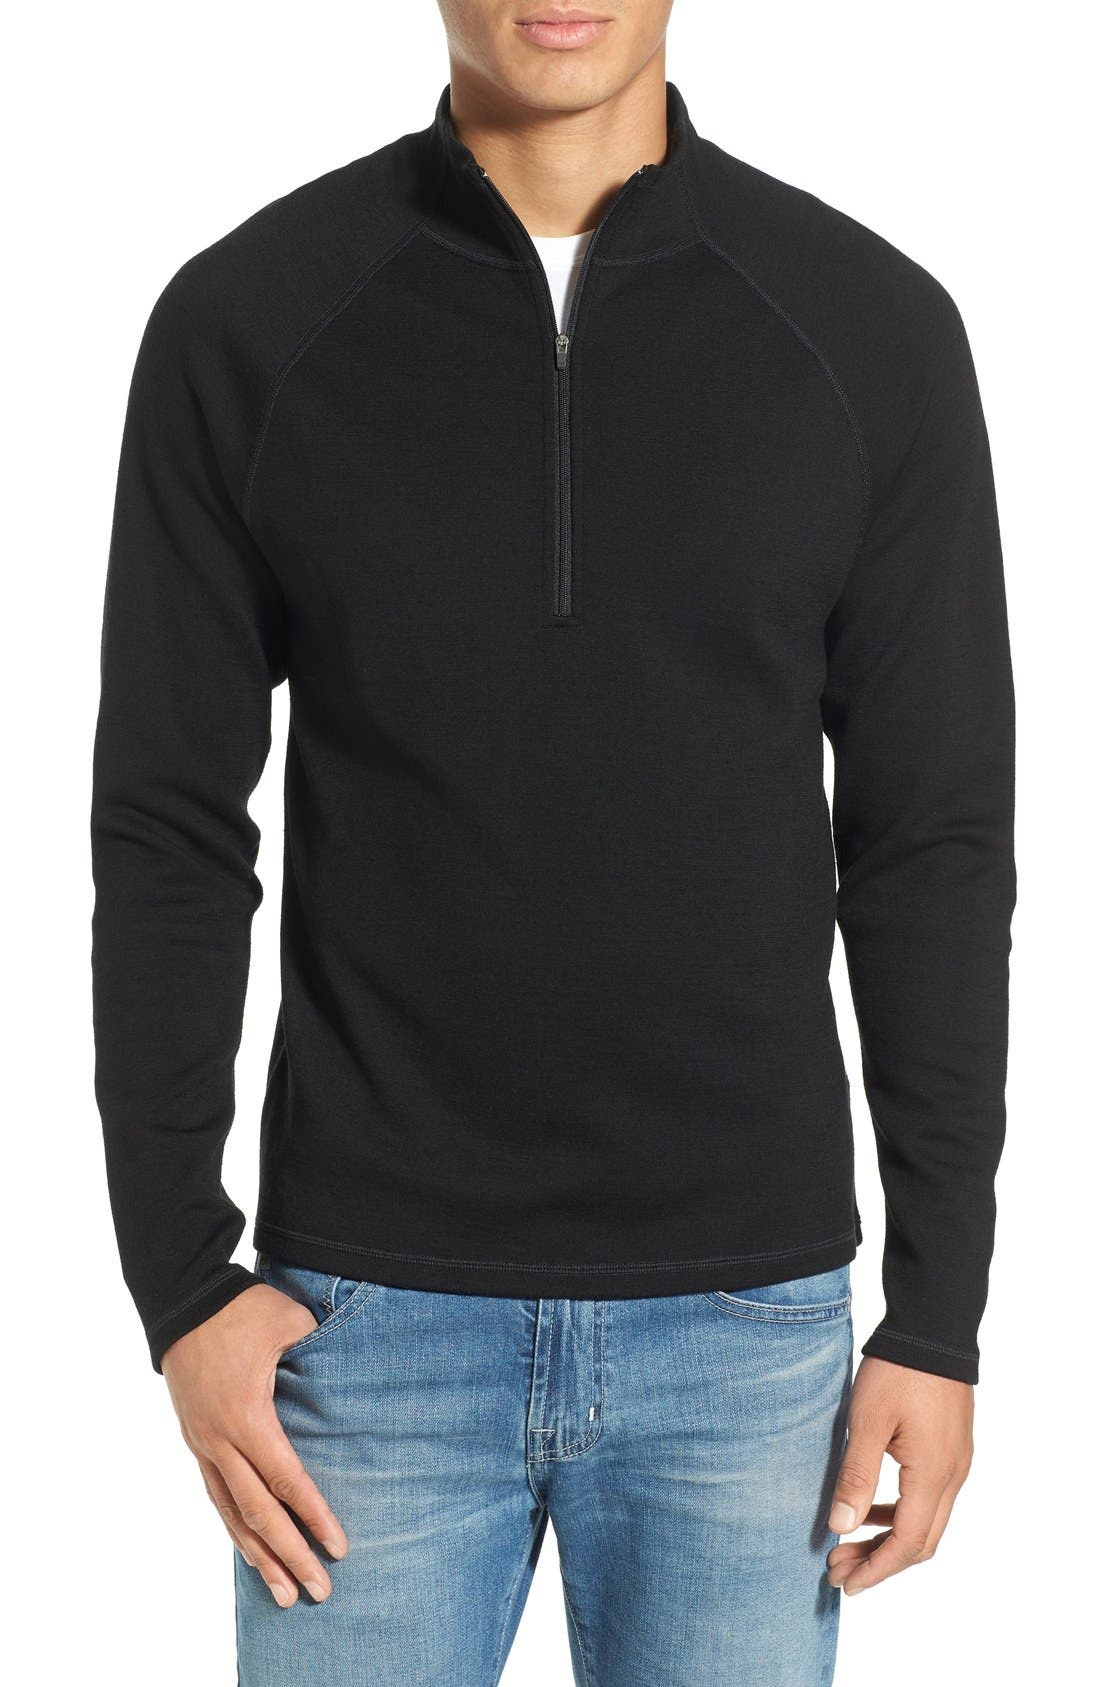 IBEX 'Shak' Merino Wool Quarter Zip Top